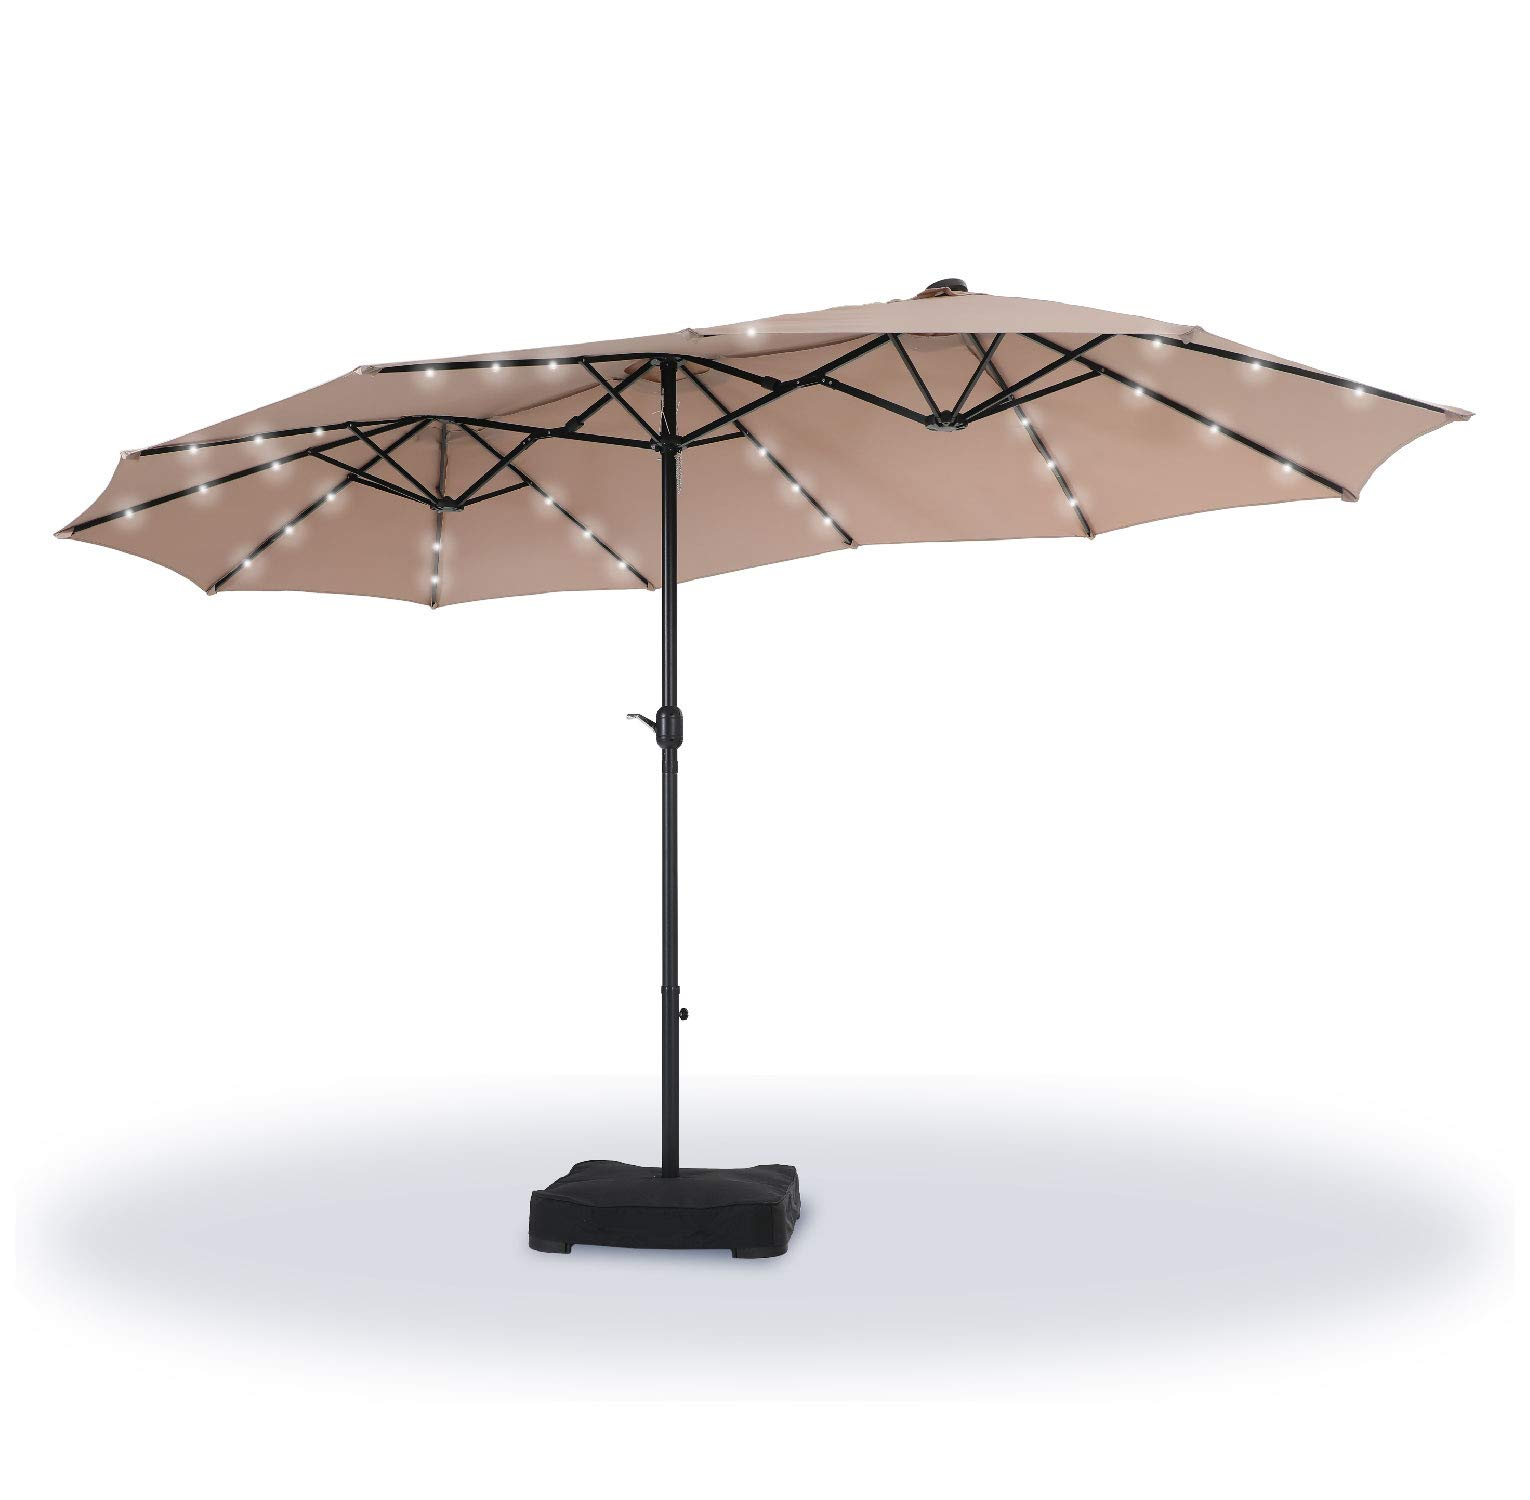 Sponsored Ad - Sophia & William 15ft Patio Umbrella with Lights (Base Included), Extra Large Outdoor Double-sided Umbrell...